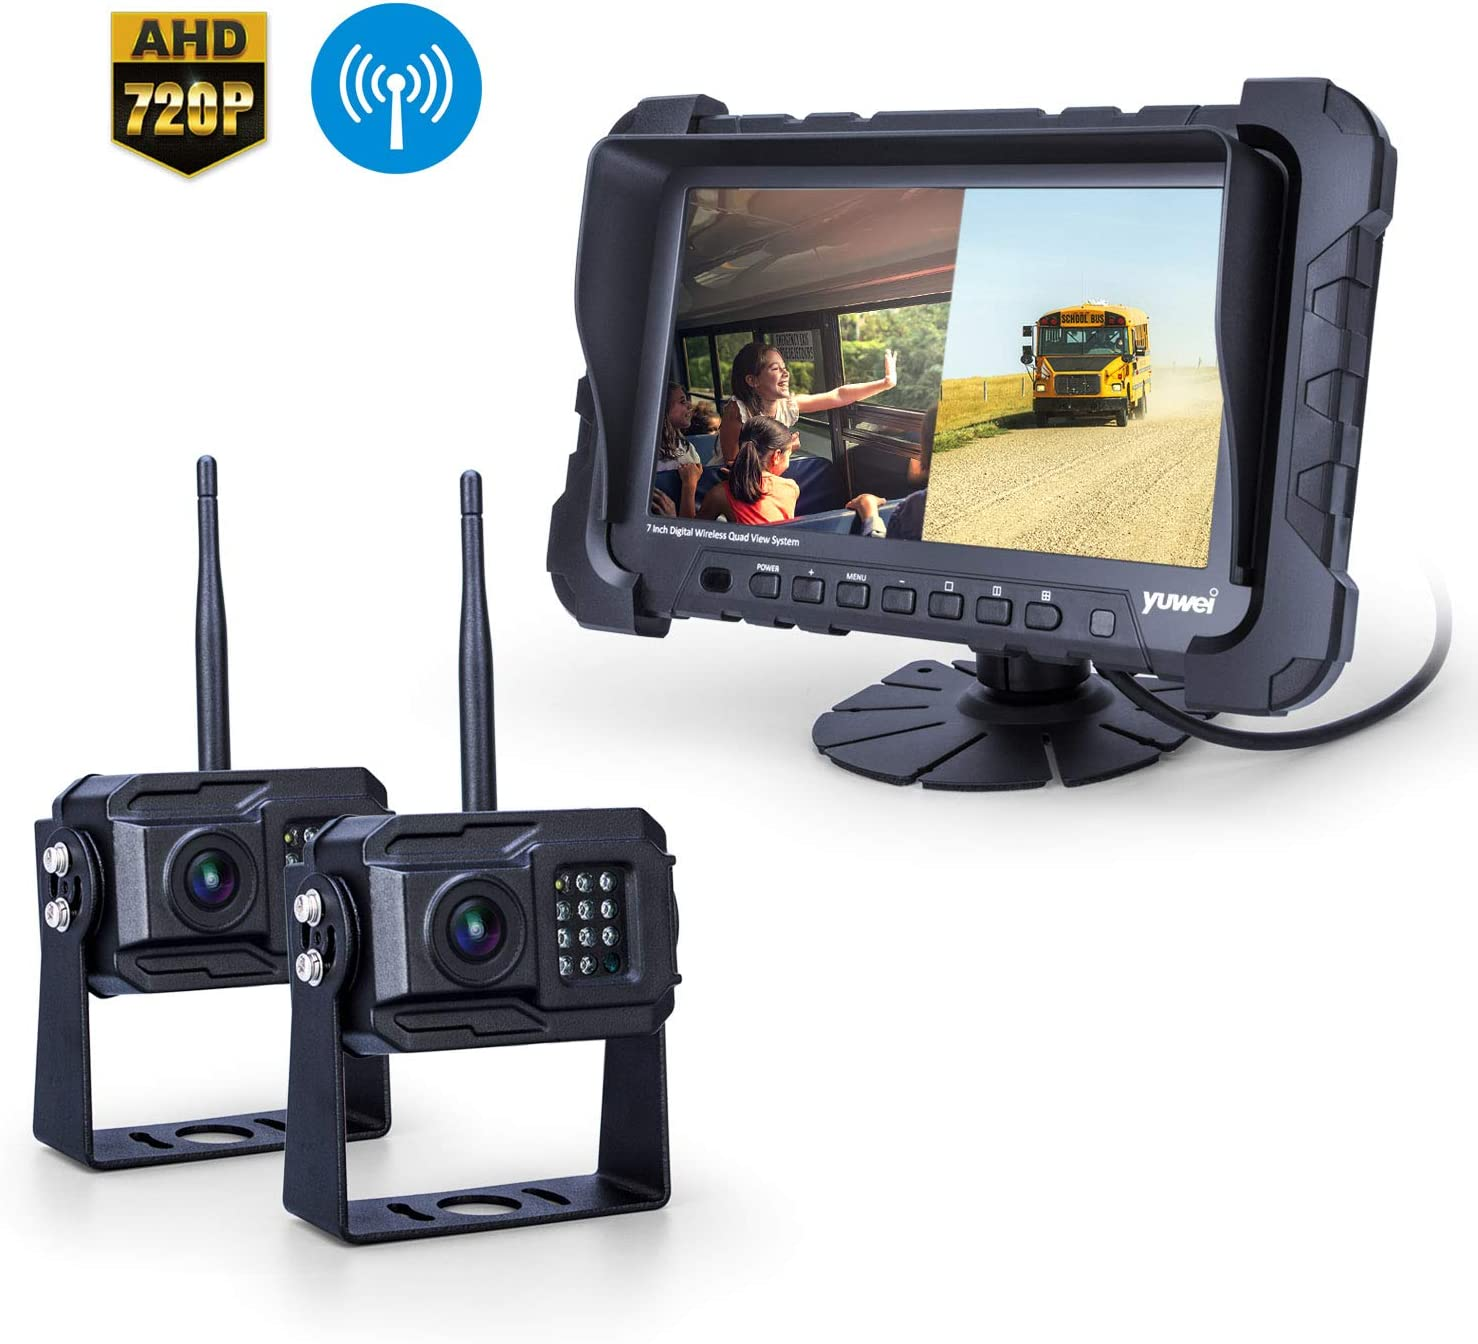 Yuwei Digital Wireless Backup Camera System,YW-77214 Dual HD 720P Camera Wireless Reverse System with Night Vision